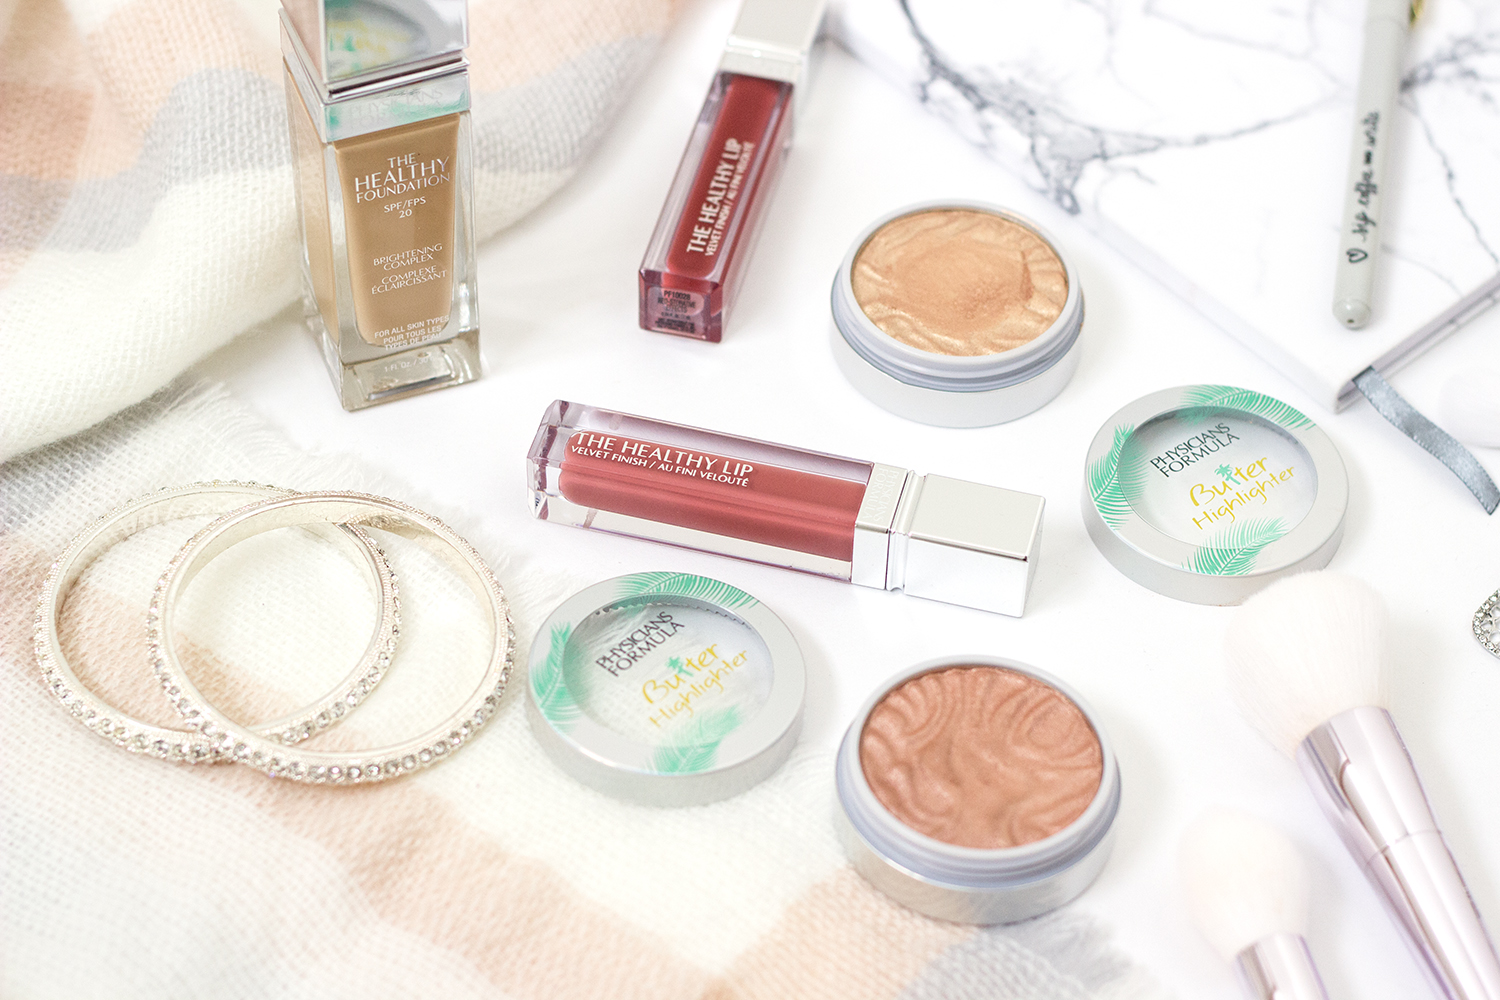 New launches from Physician's Formula for Spring 2018